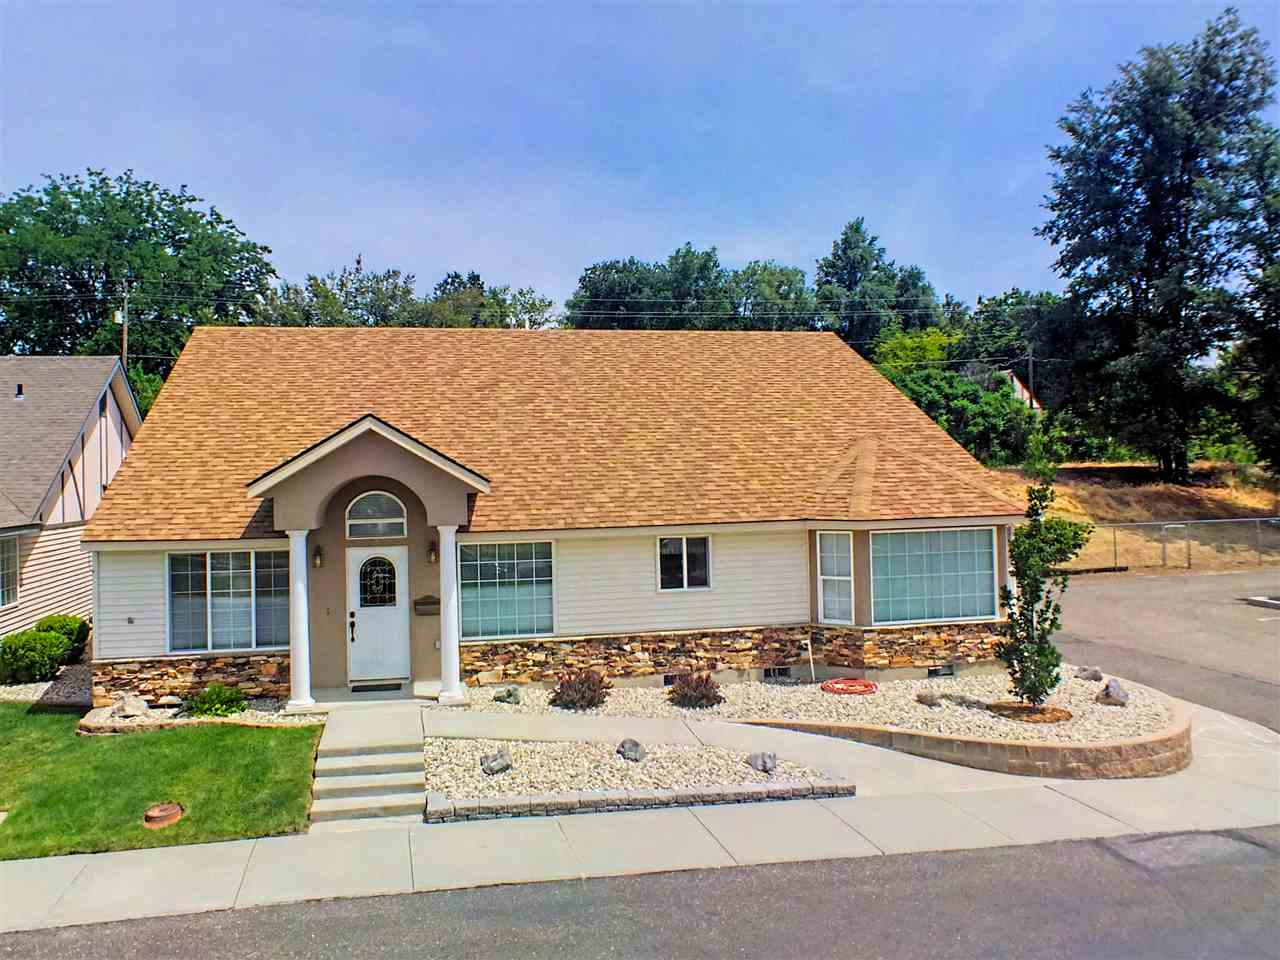 120 Country Ln Loop, Payette, ID 83661